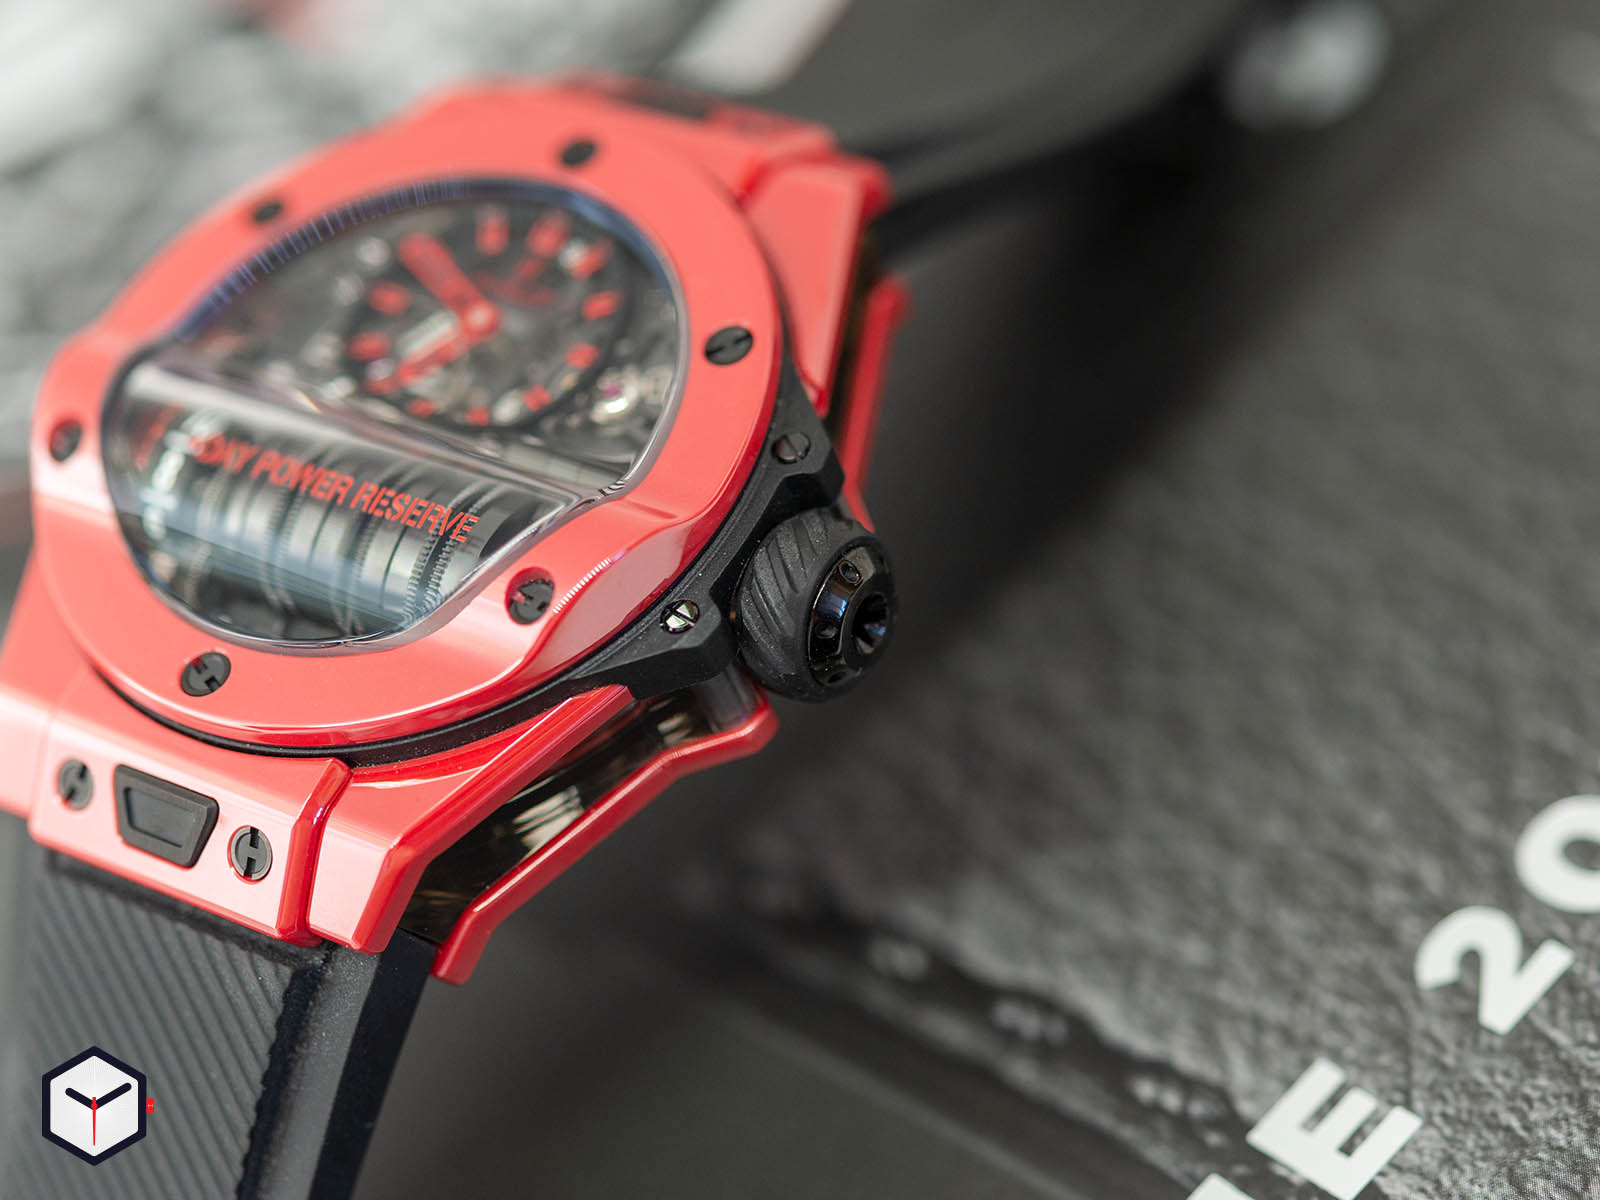 911-cf-0113-rx-hublot-big-bang-mp-11-red-magic-4.jpg